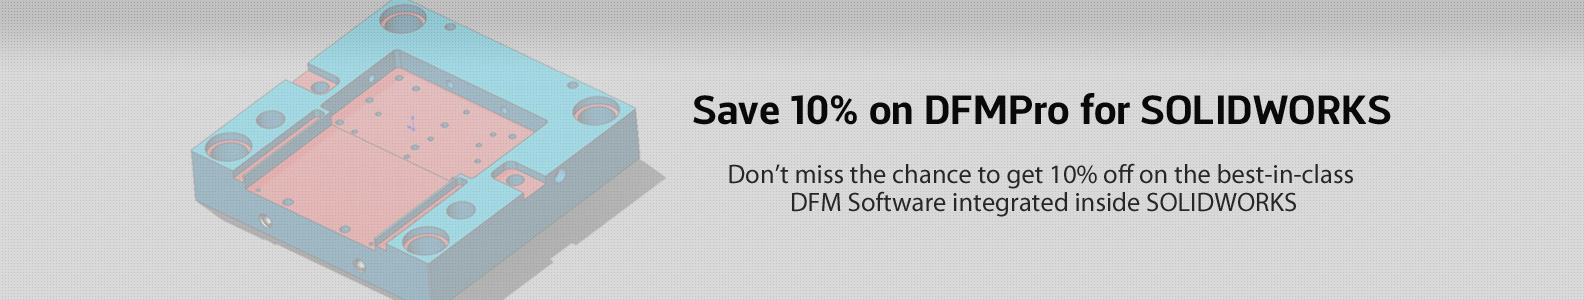 10% Off on DFMPro for Solidworks